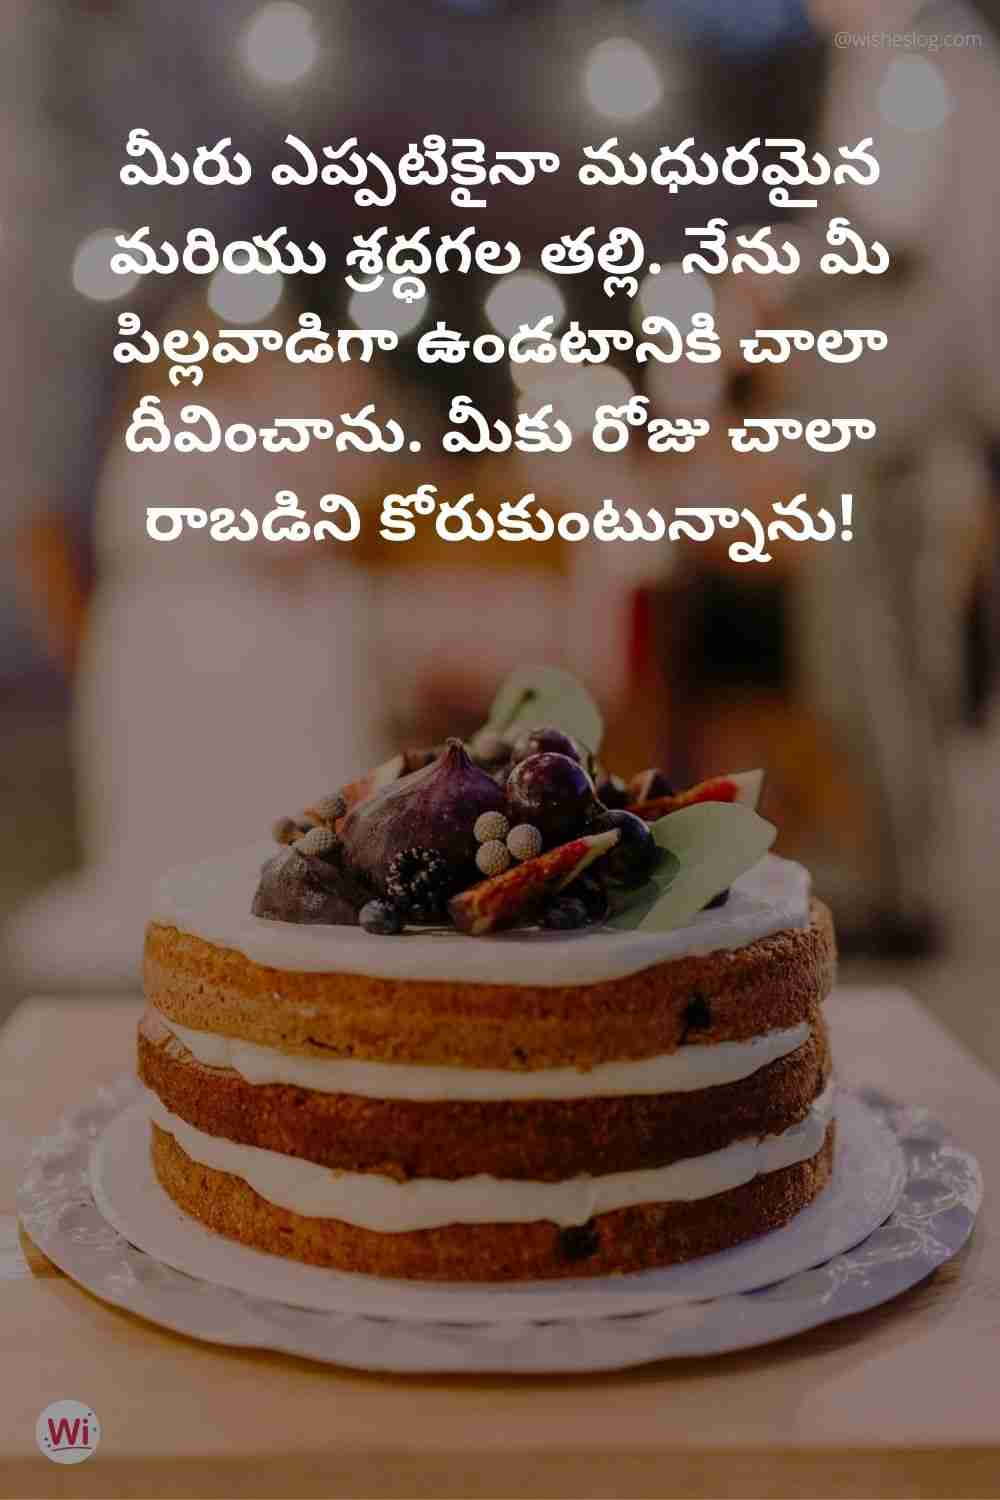 birthday messages in telugu for mom